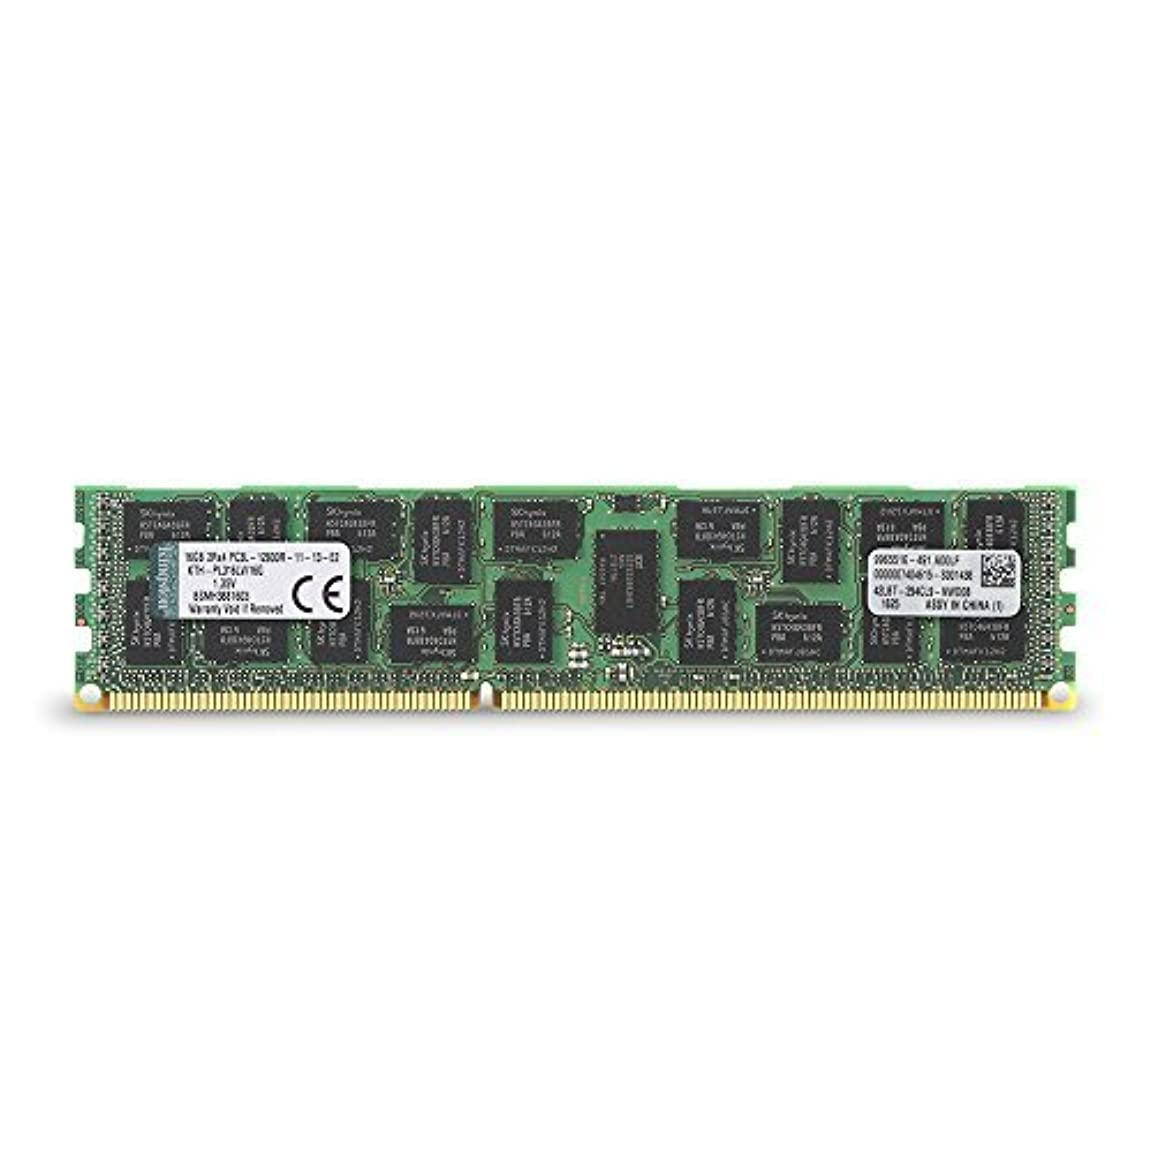 どれテメリティ十分ではないKingston Technology 16GB 1600MHz DDR3L Reg ECC Low Voltage DIMM Memory for HP/Compaq Desktop KTH-PL316LV/16G [並行輸入品]